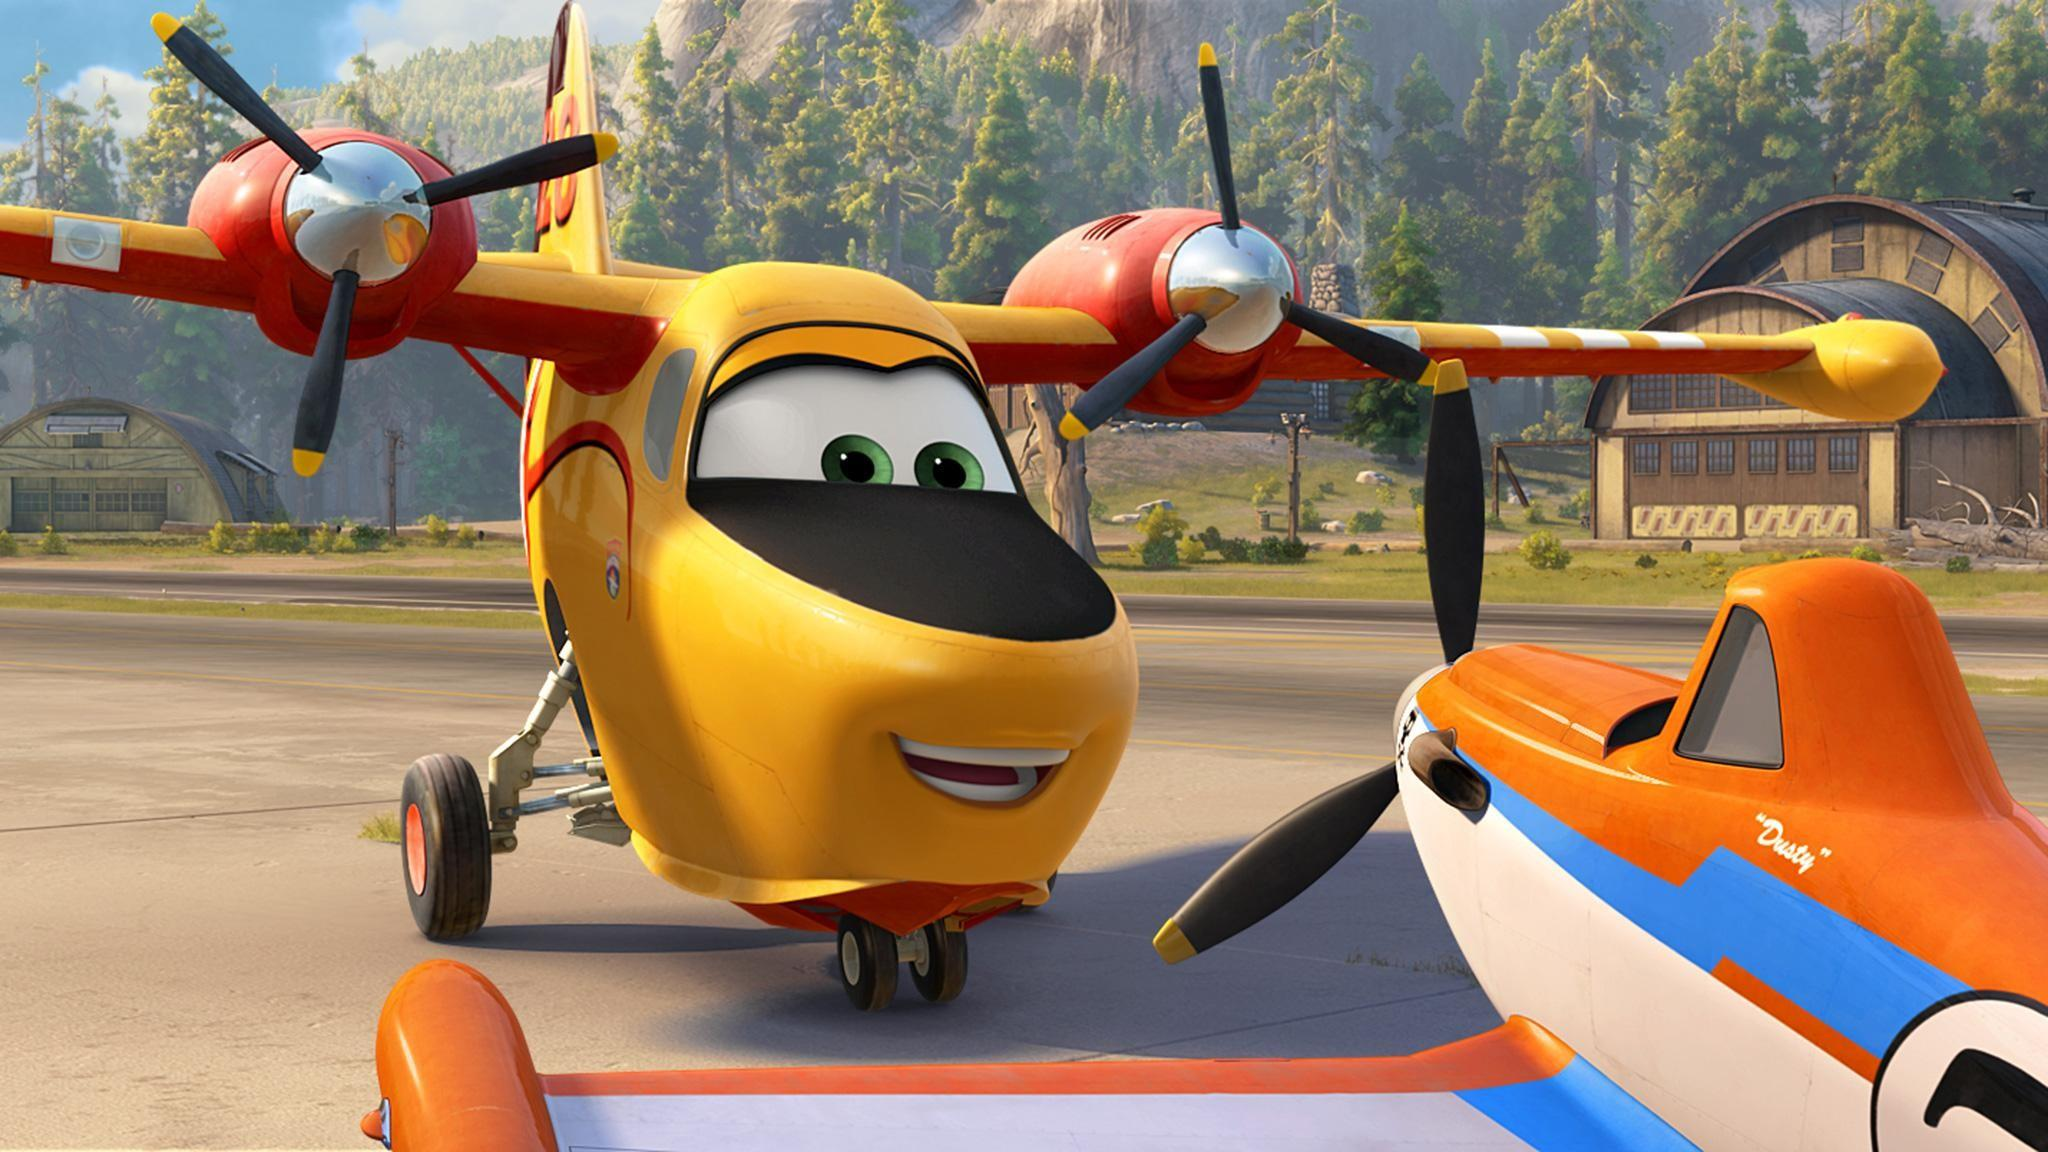 Dipper (voiced by Julie Bowen) in 'Planes: Fire & Rescue'